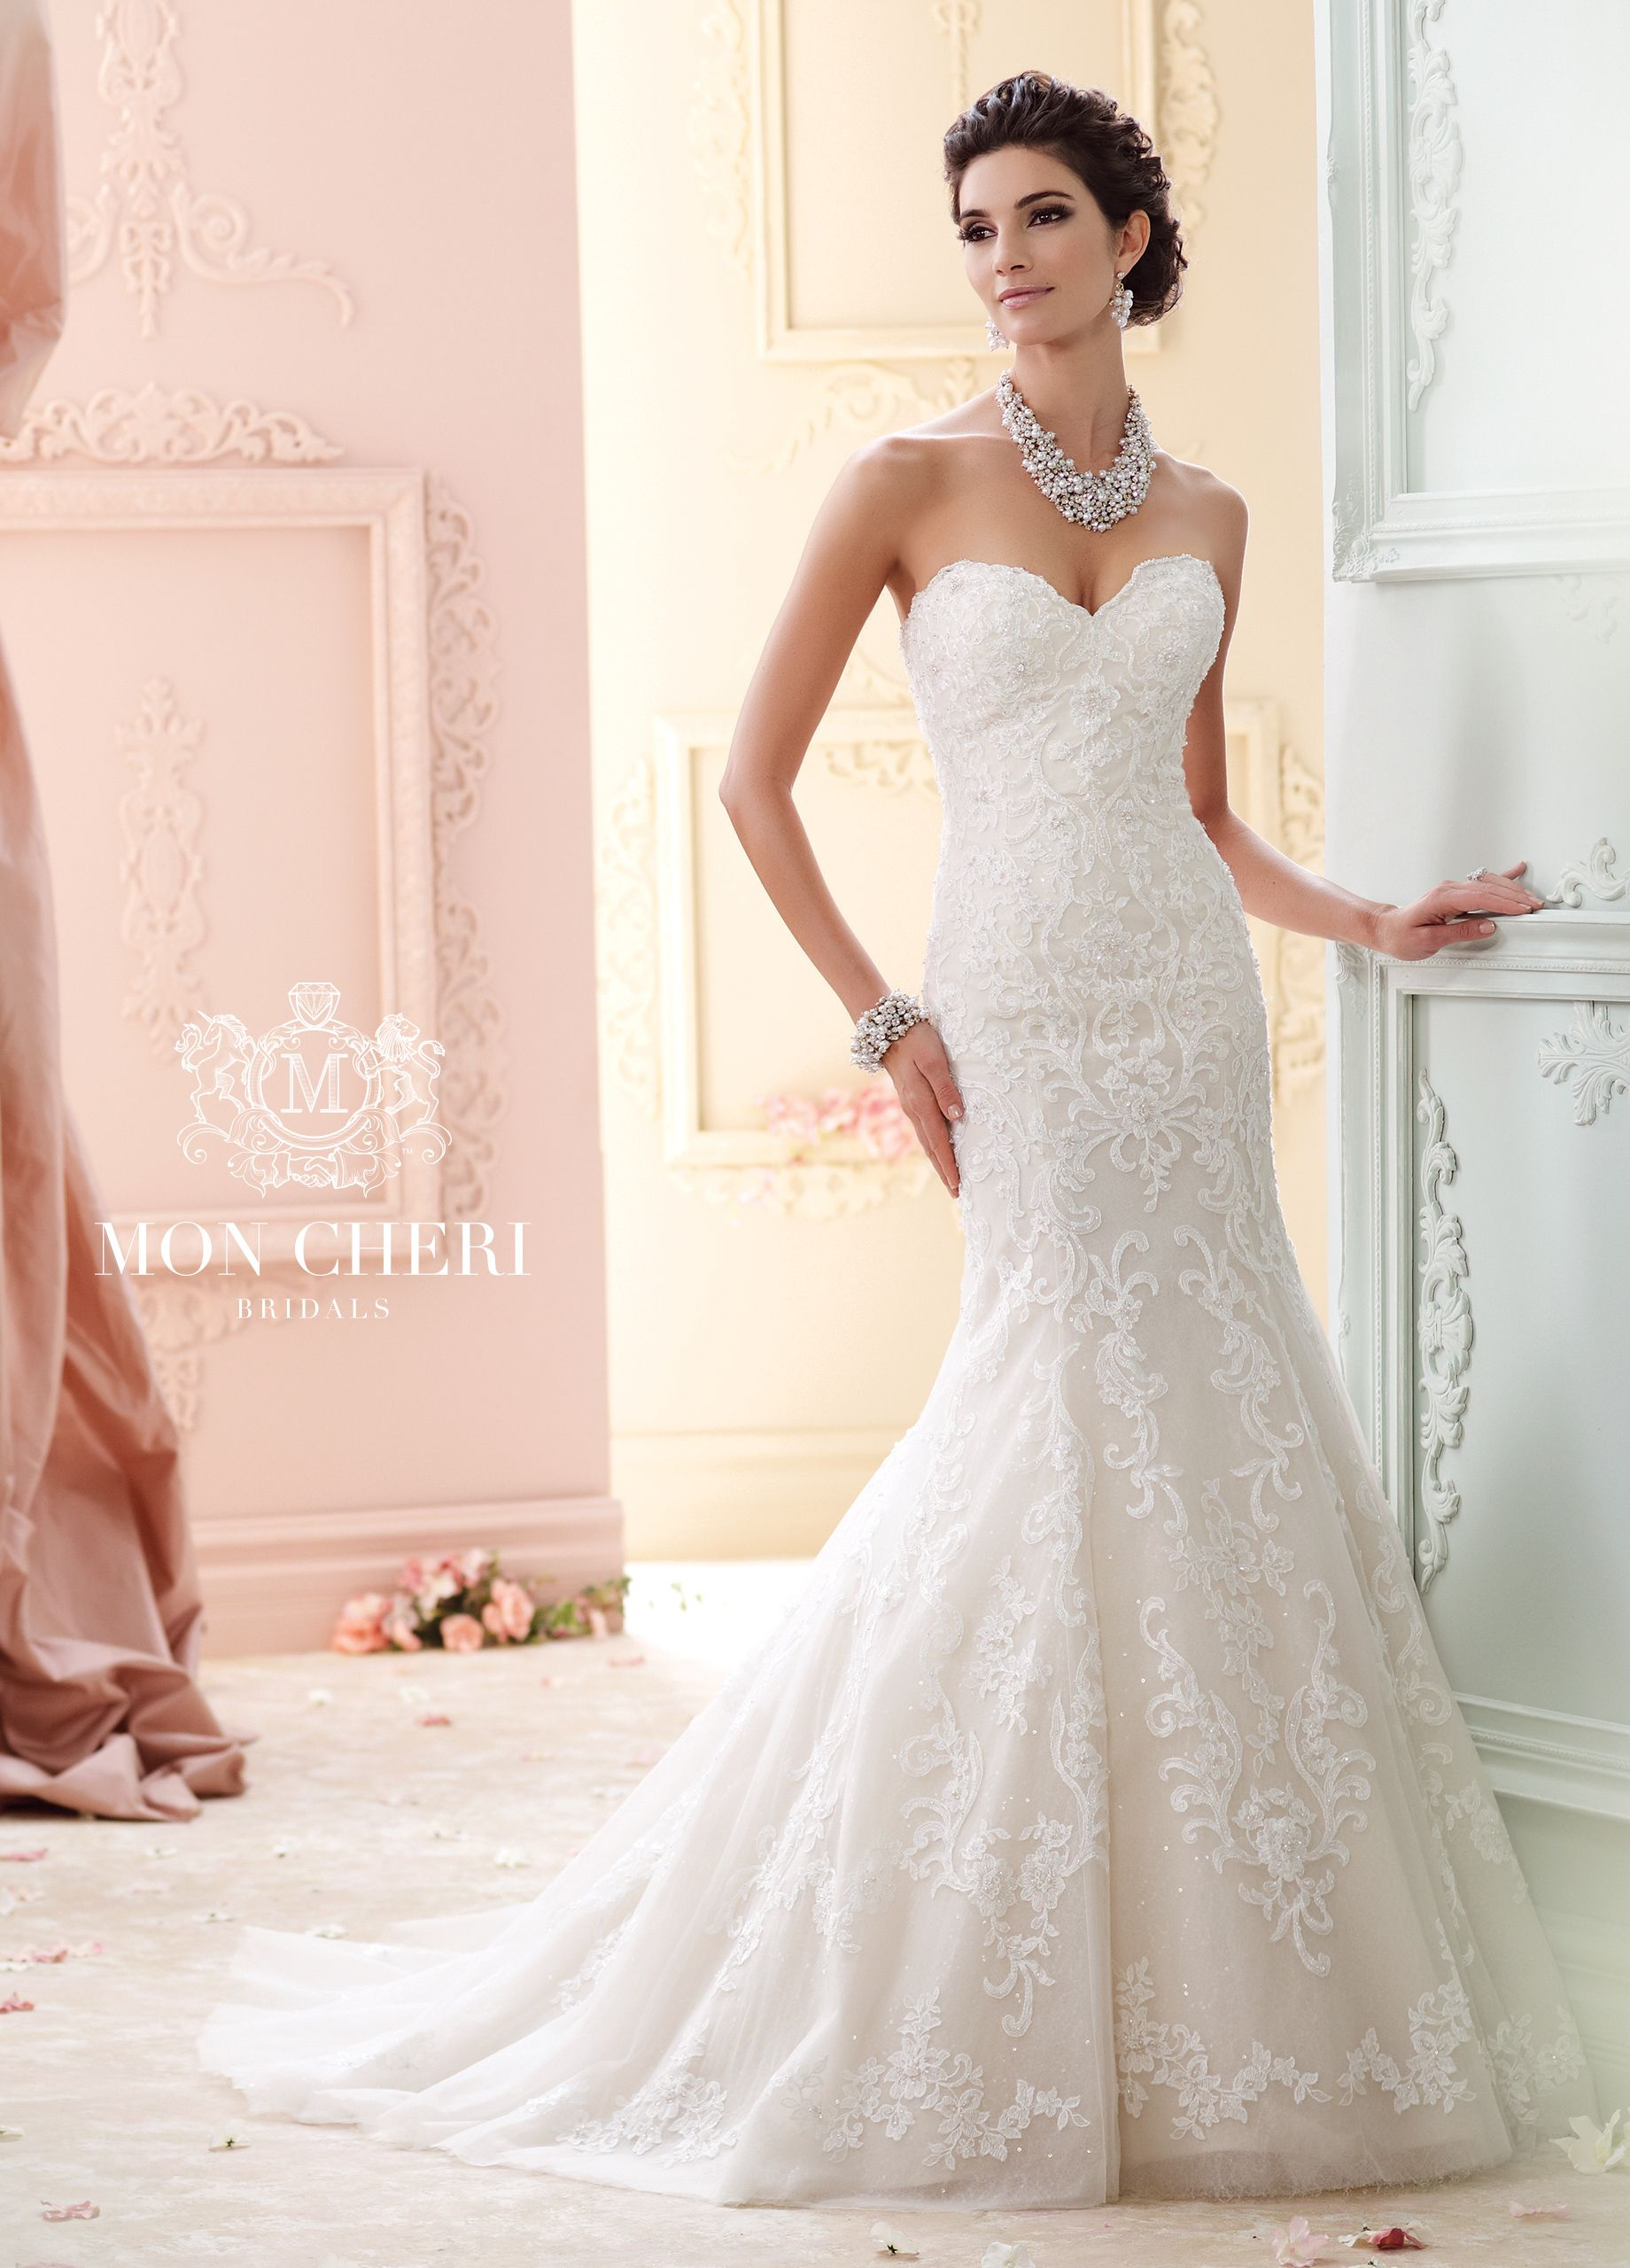 Mon Cheri Bridals 215274 C Elegant Vintage Wedding Dress Strapless Hand Beaded Embroidered Lace And Sequin Tulle Over Memory Taffeta Fit Flare